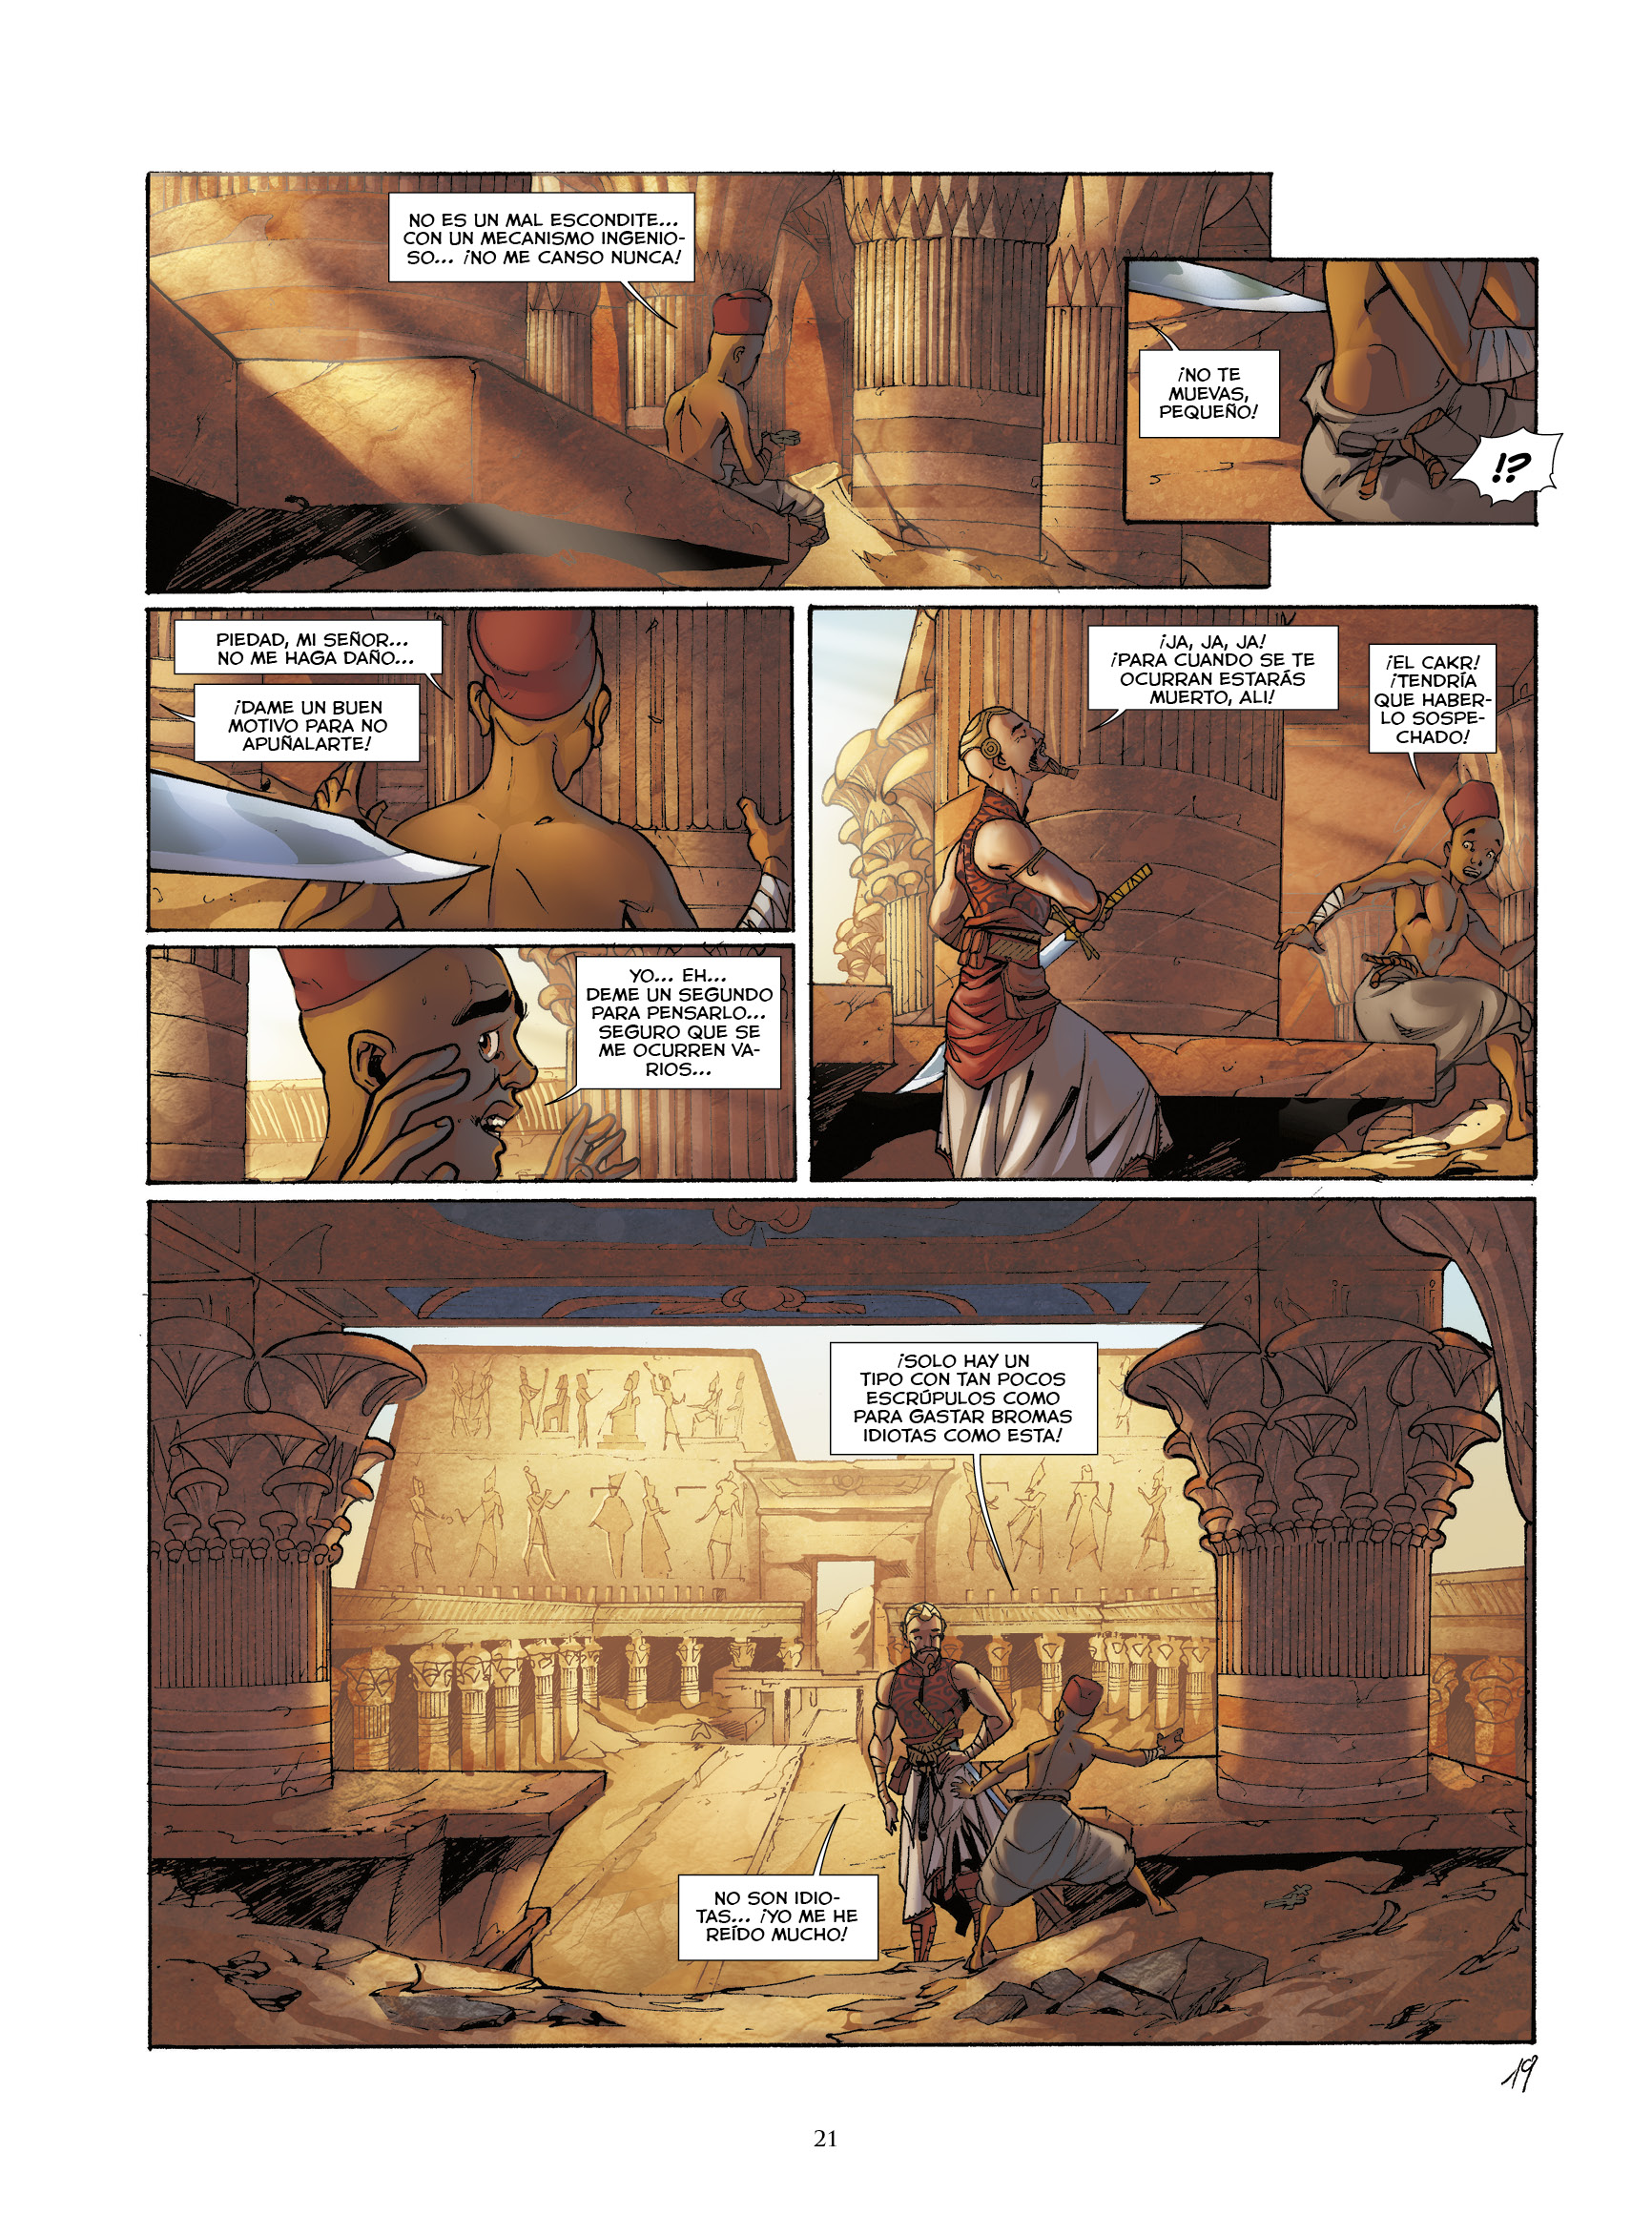 assassinscreed_6_3